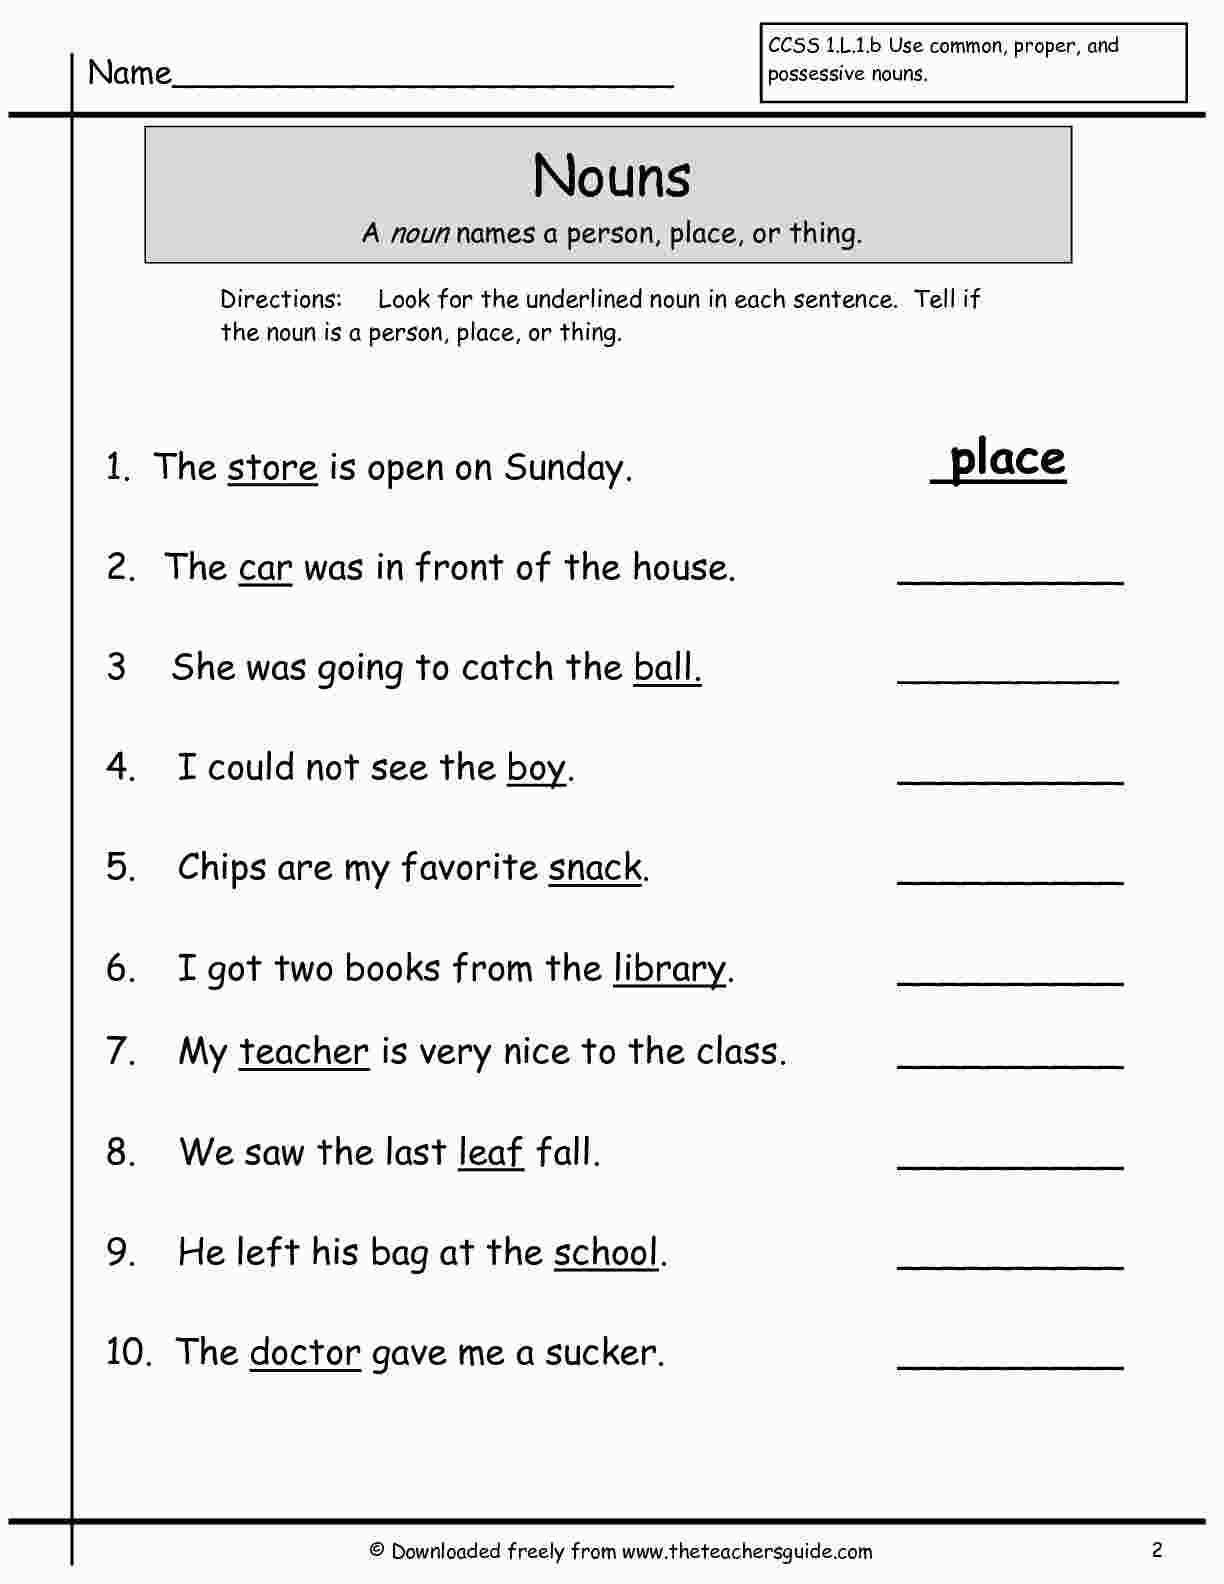 nouns worksheet for grade 1 Nouns worksheet, Nouns first